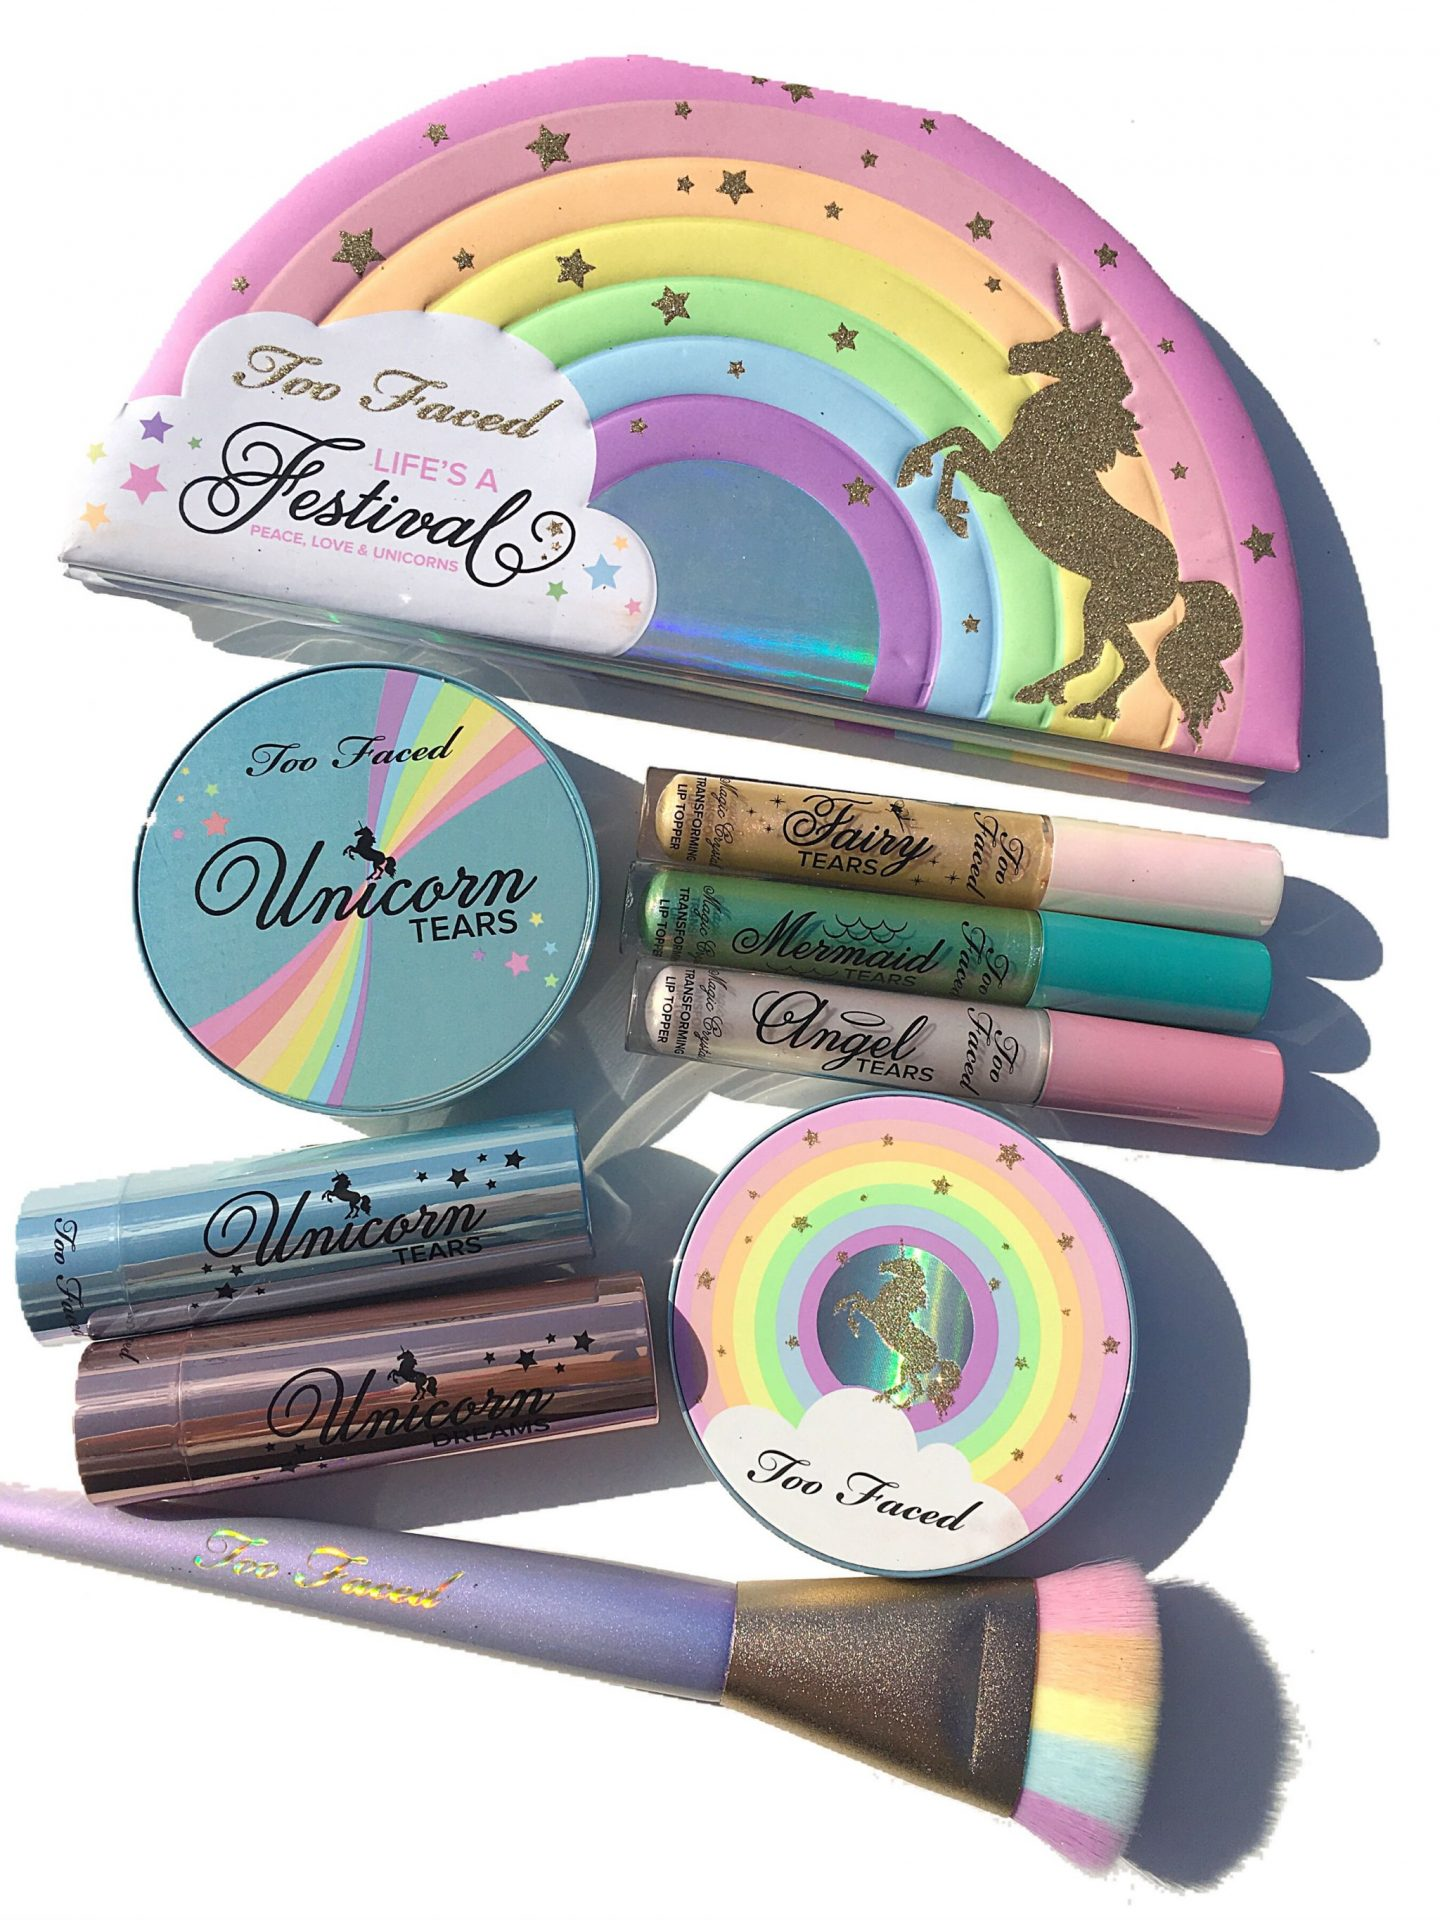 Too Faced Life's a Festival Collection swatches | www.calibeaute.com